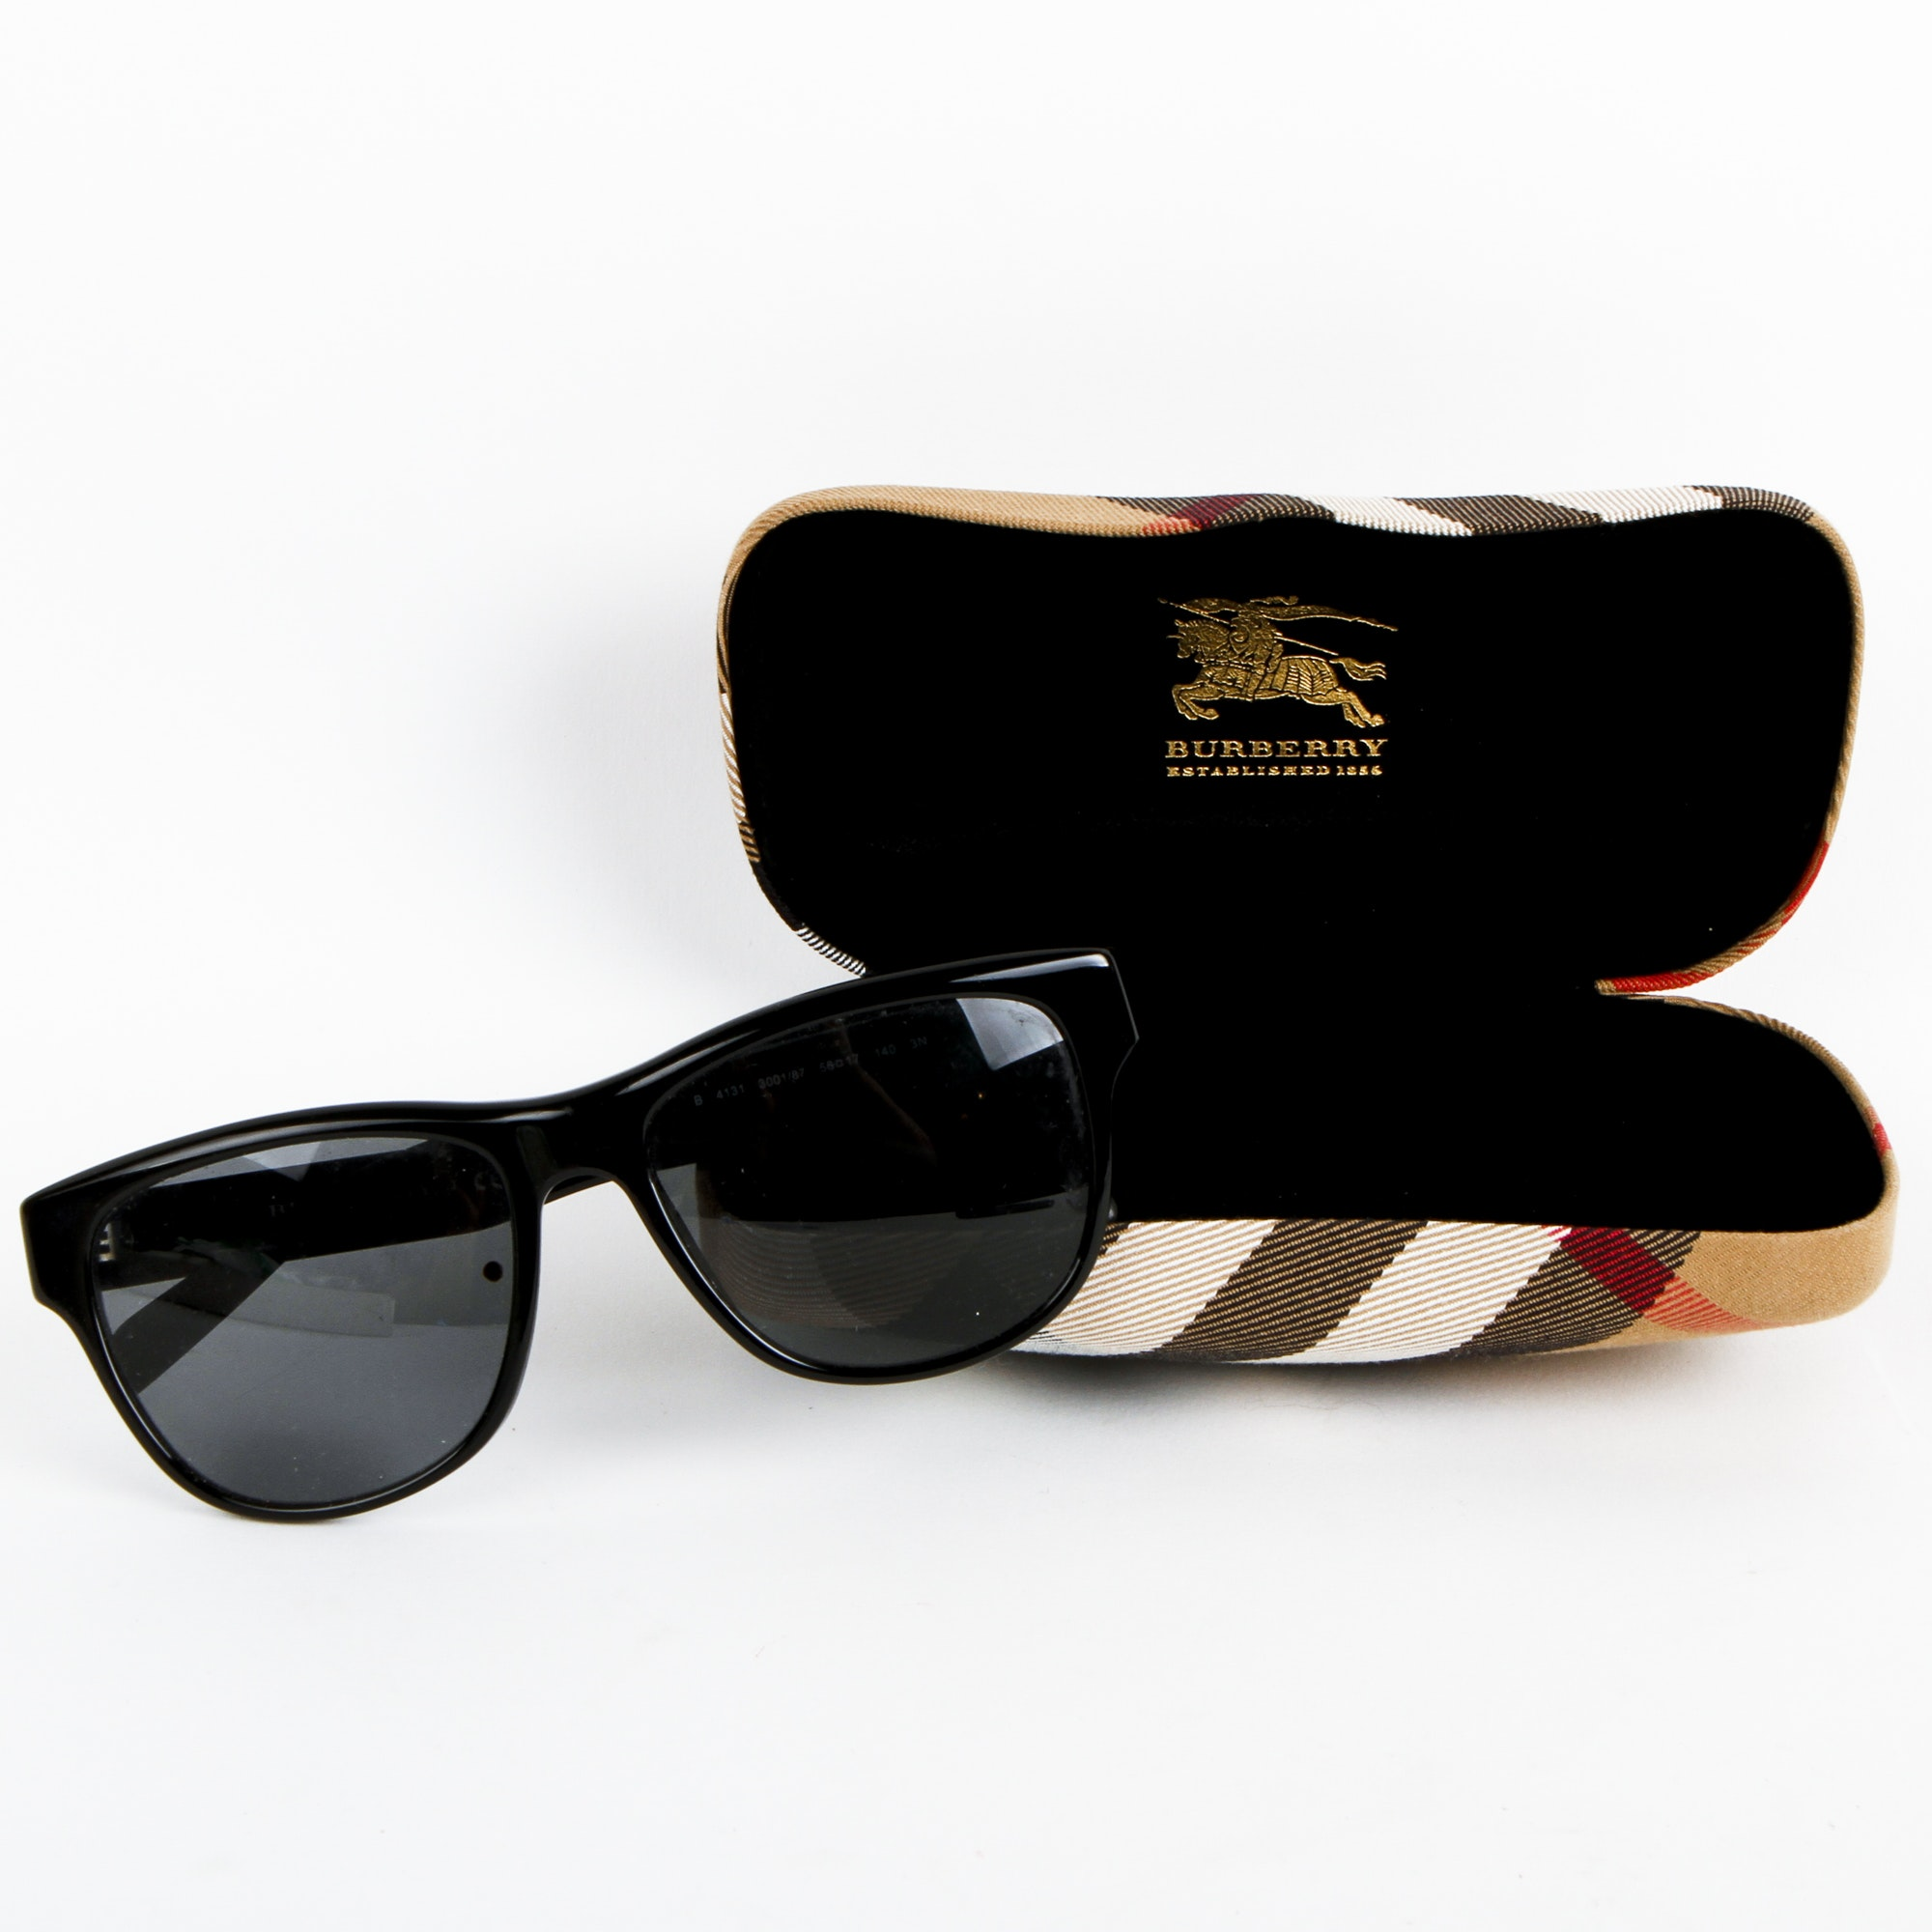 Men's Burberry Sunglasses